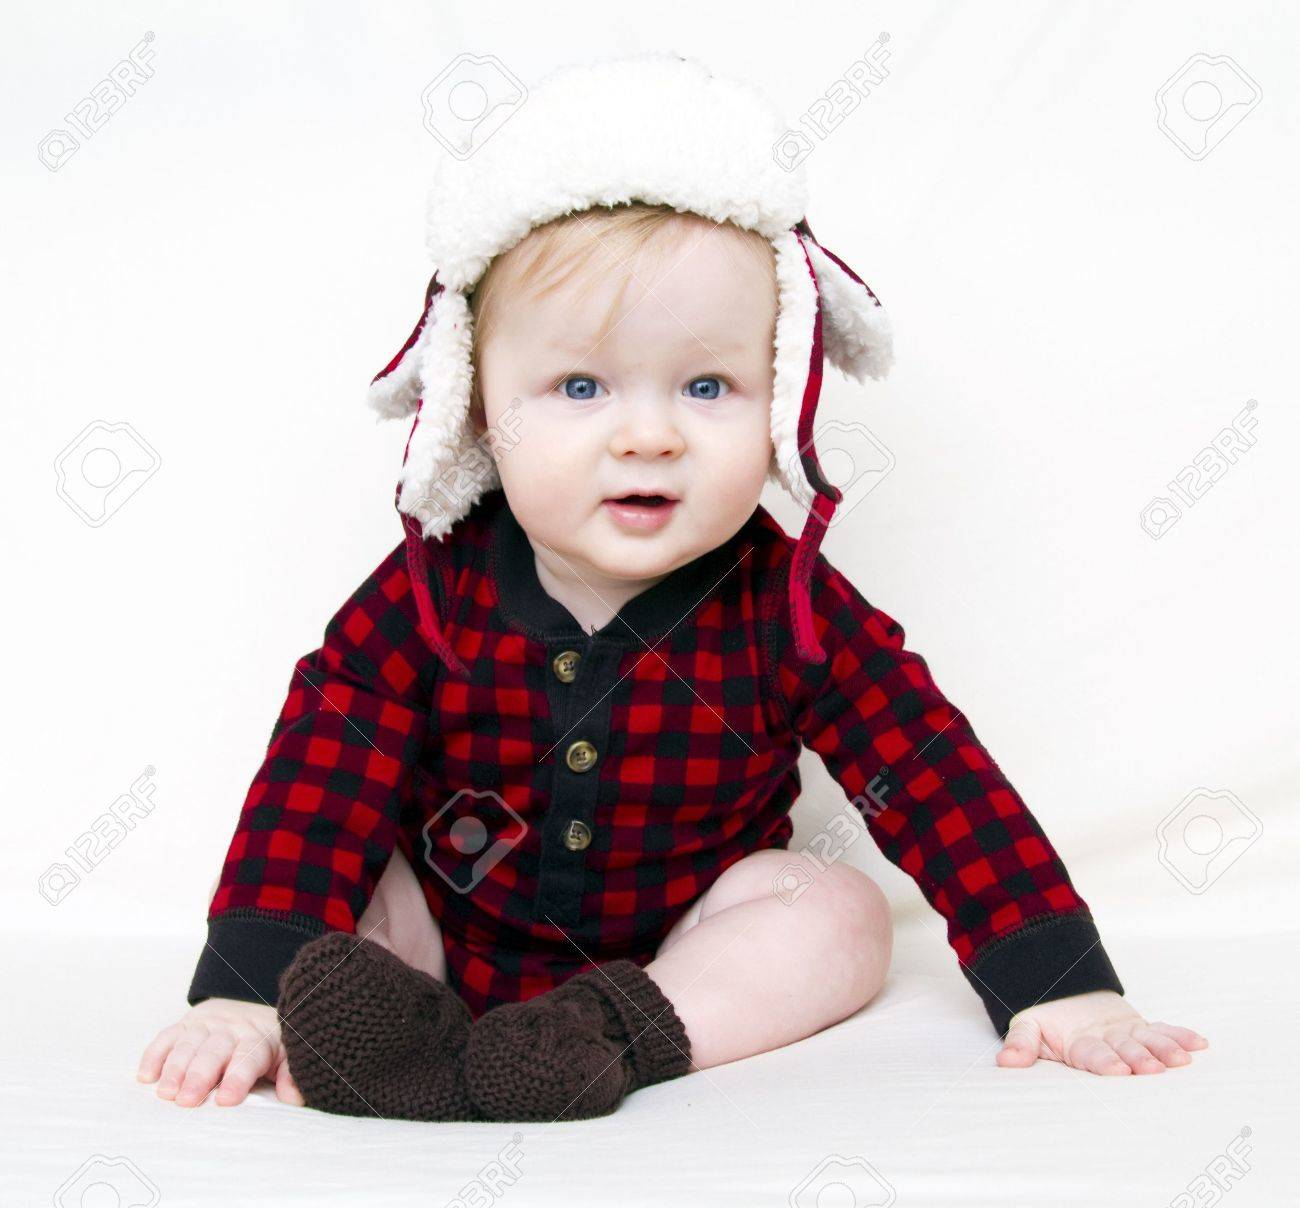 3f40b71b6 Happy Christmas baby with red plaid shirt, furry, fleece plaid hat with  brown boats